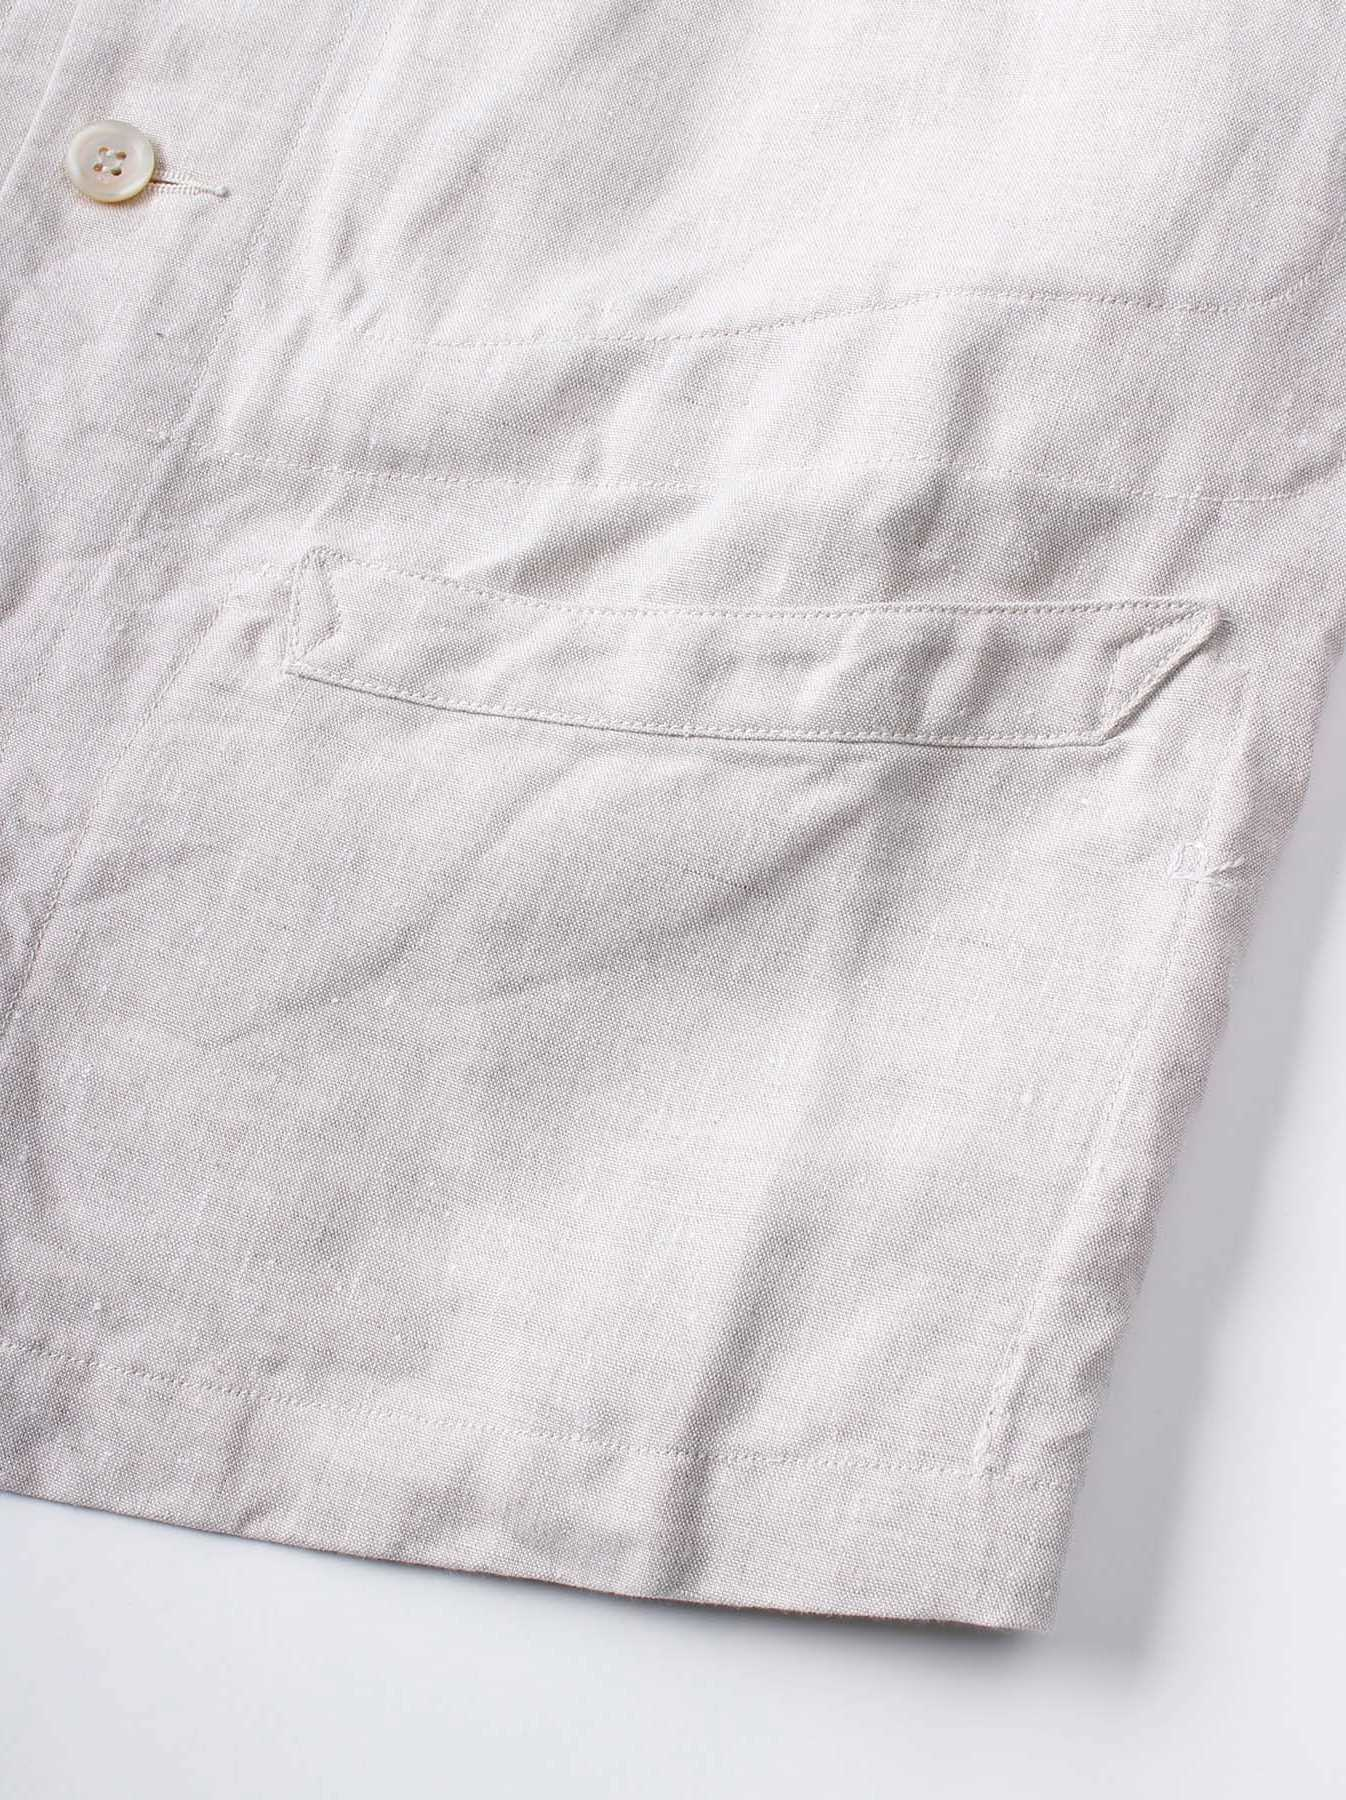 WH Linen Stand Collar Jacket-9